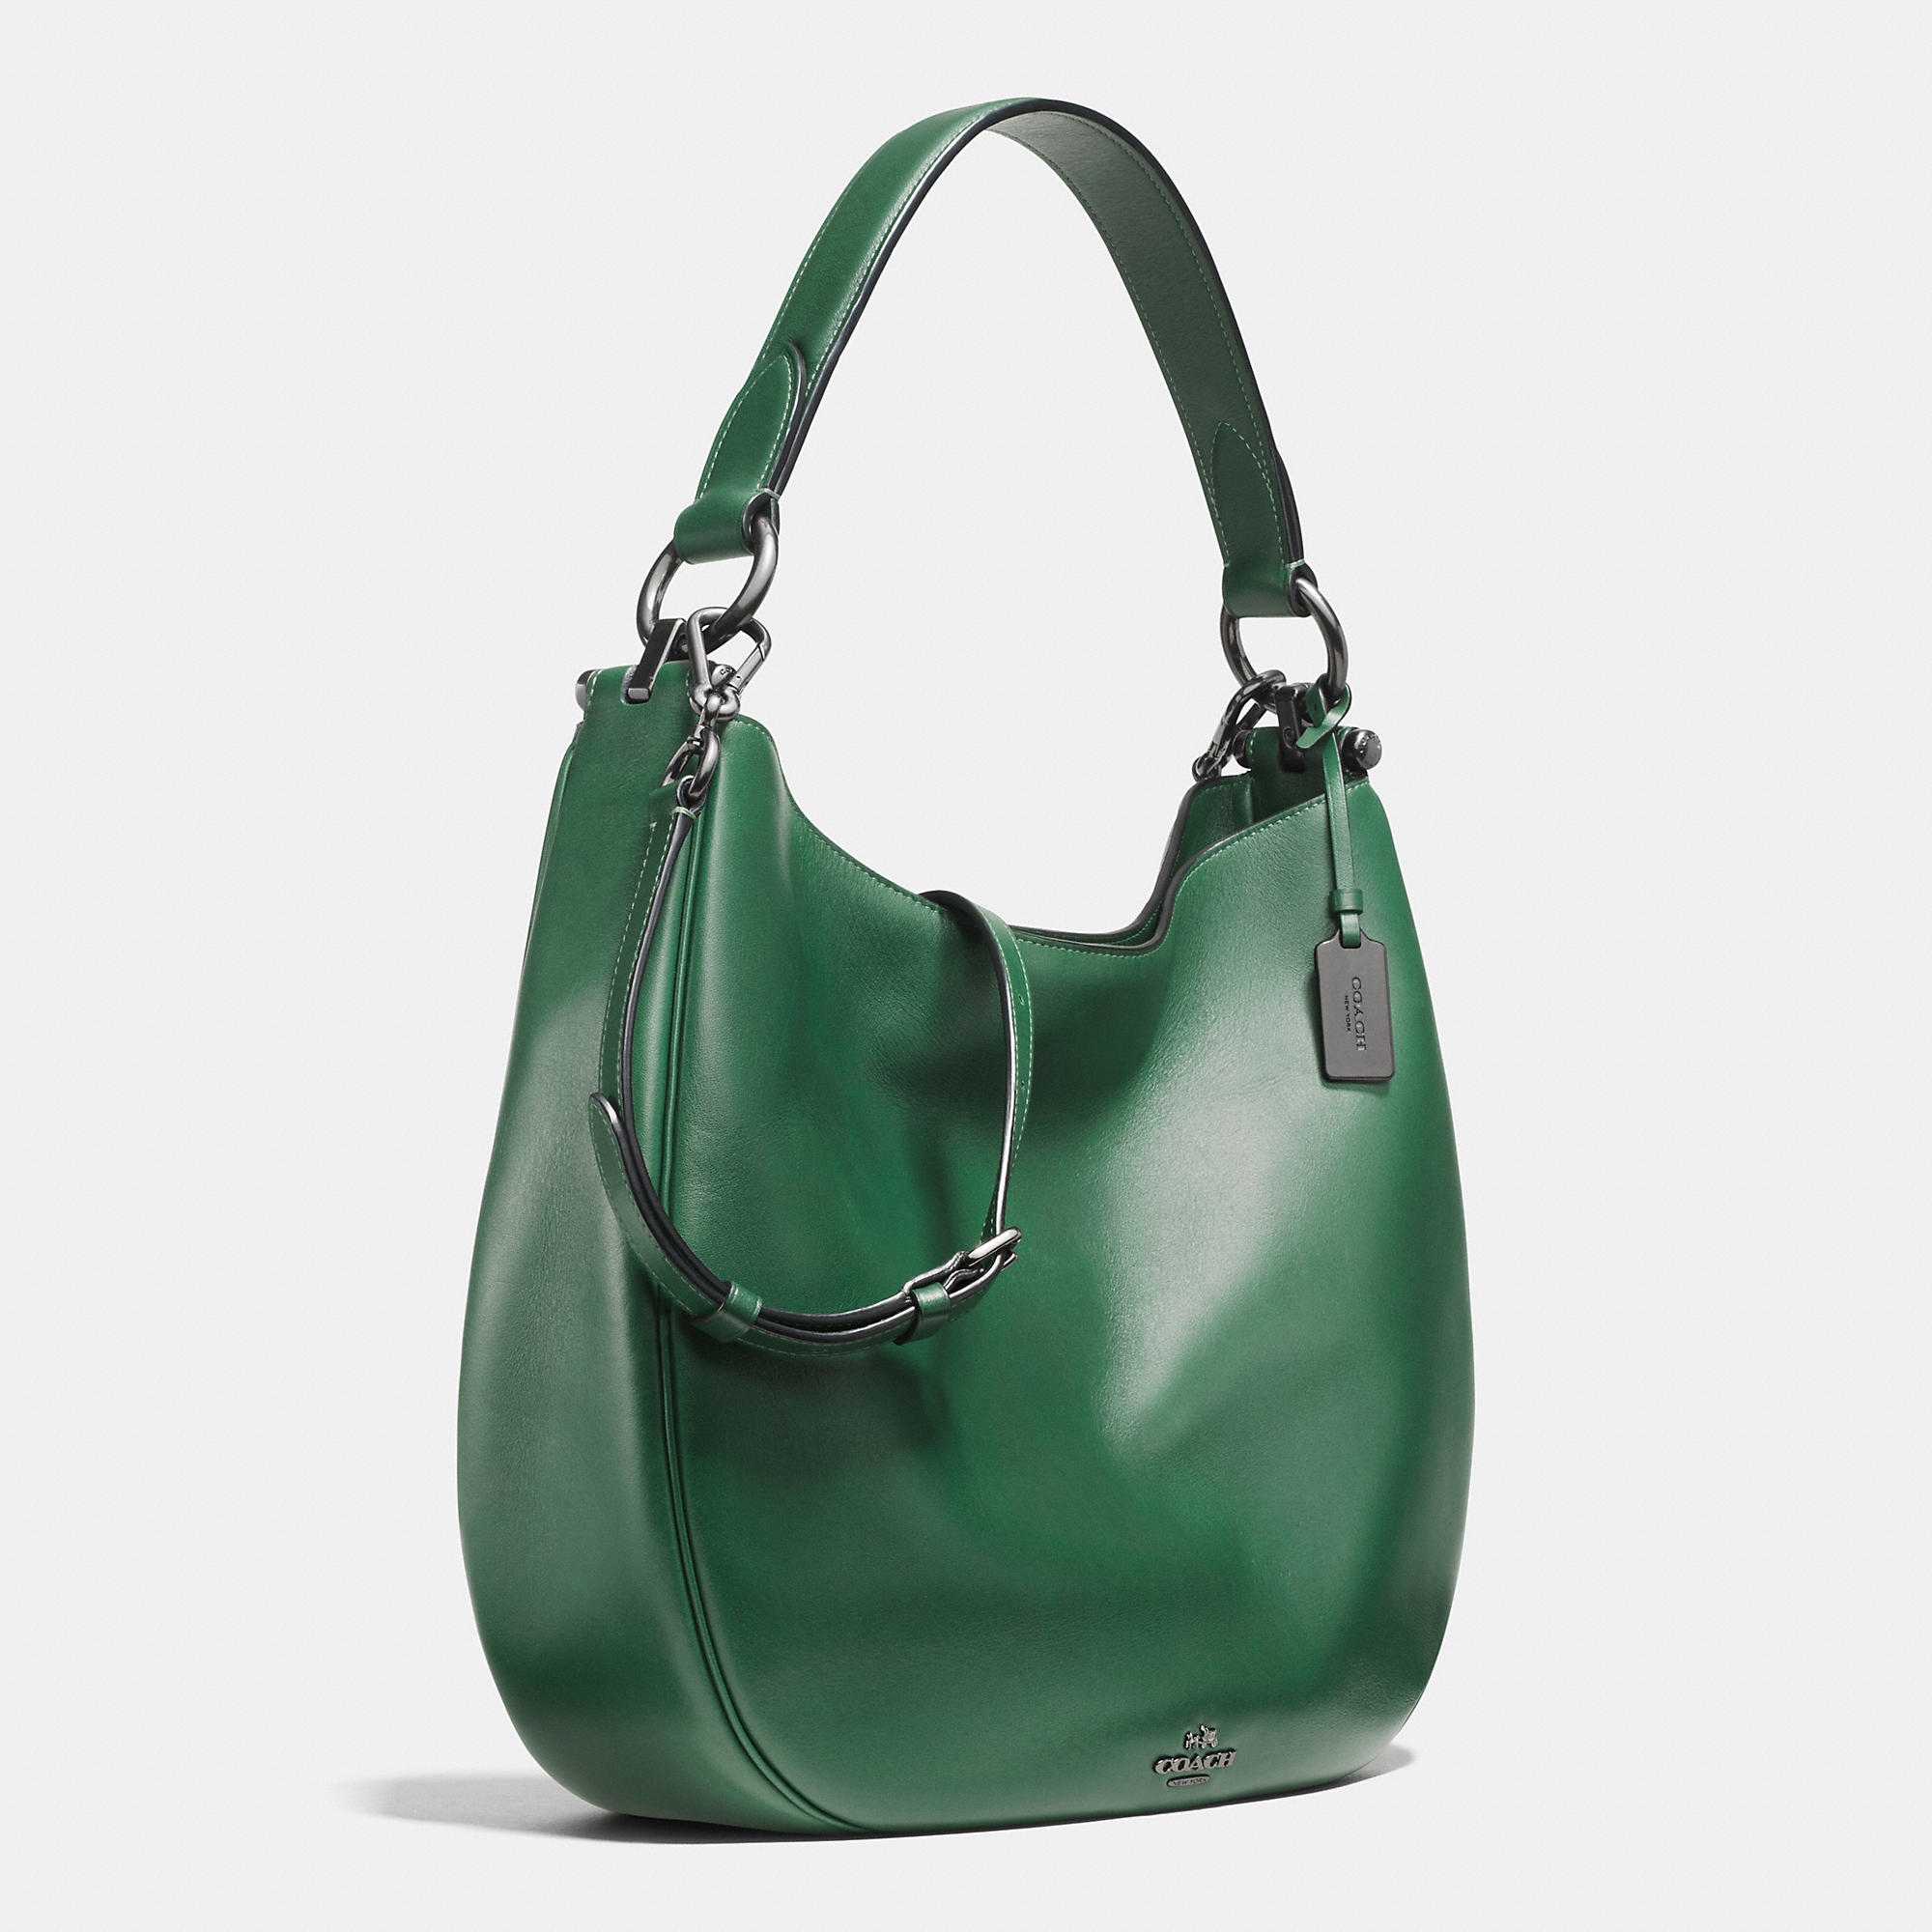 42271d88269 Lyst - COACH Nomad Hobo In Glovetanned Leather in Green